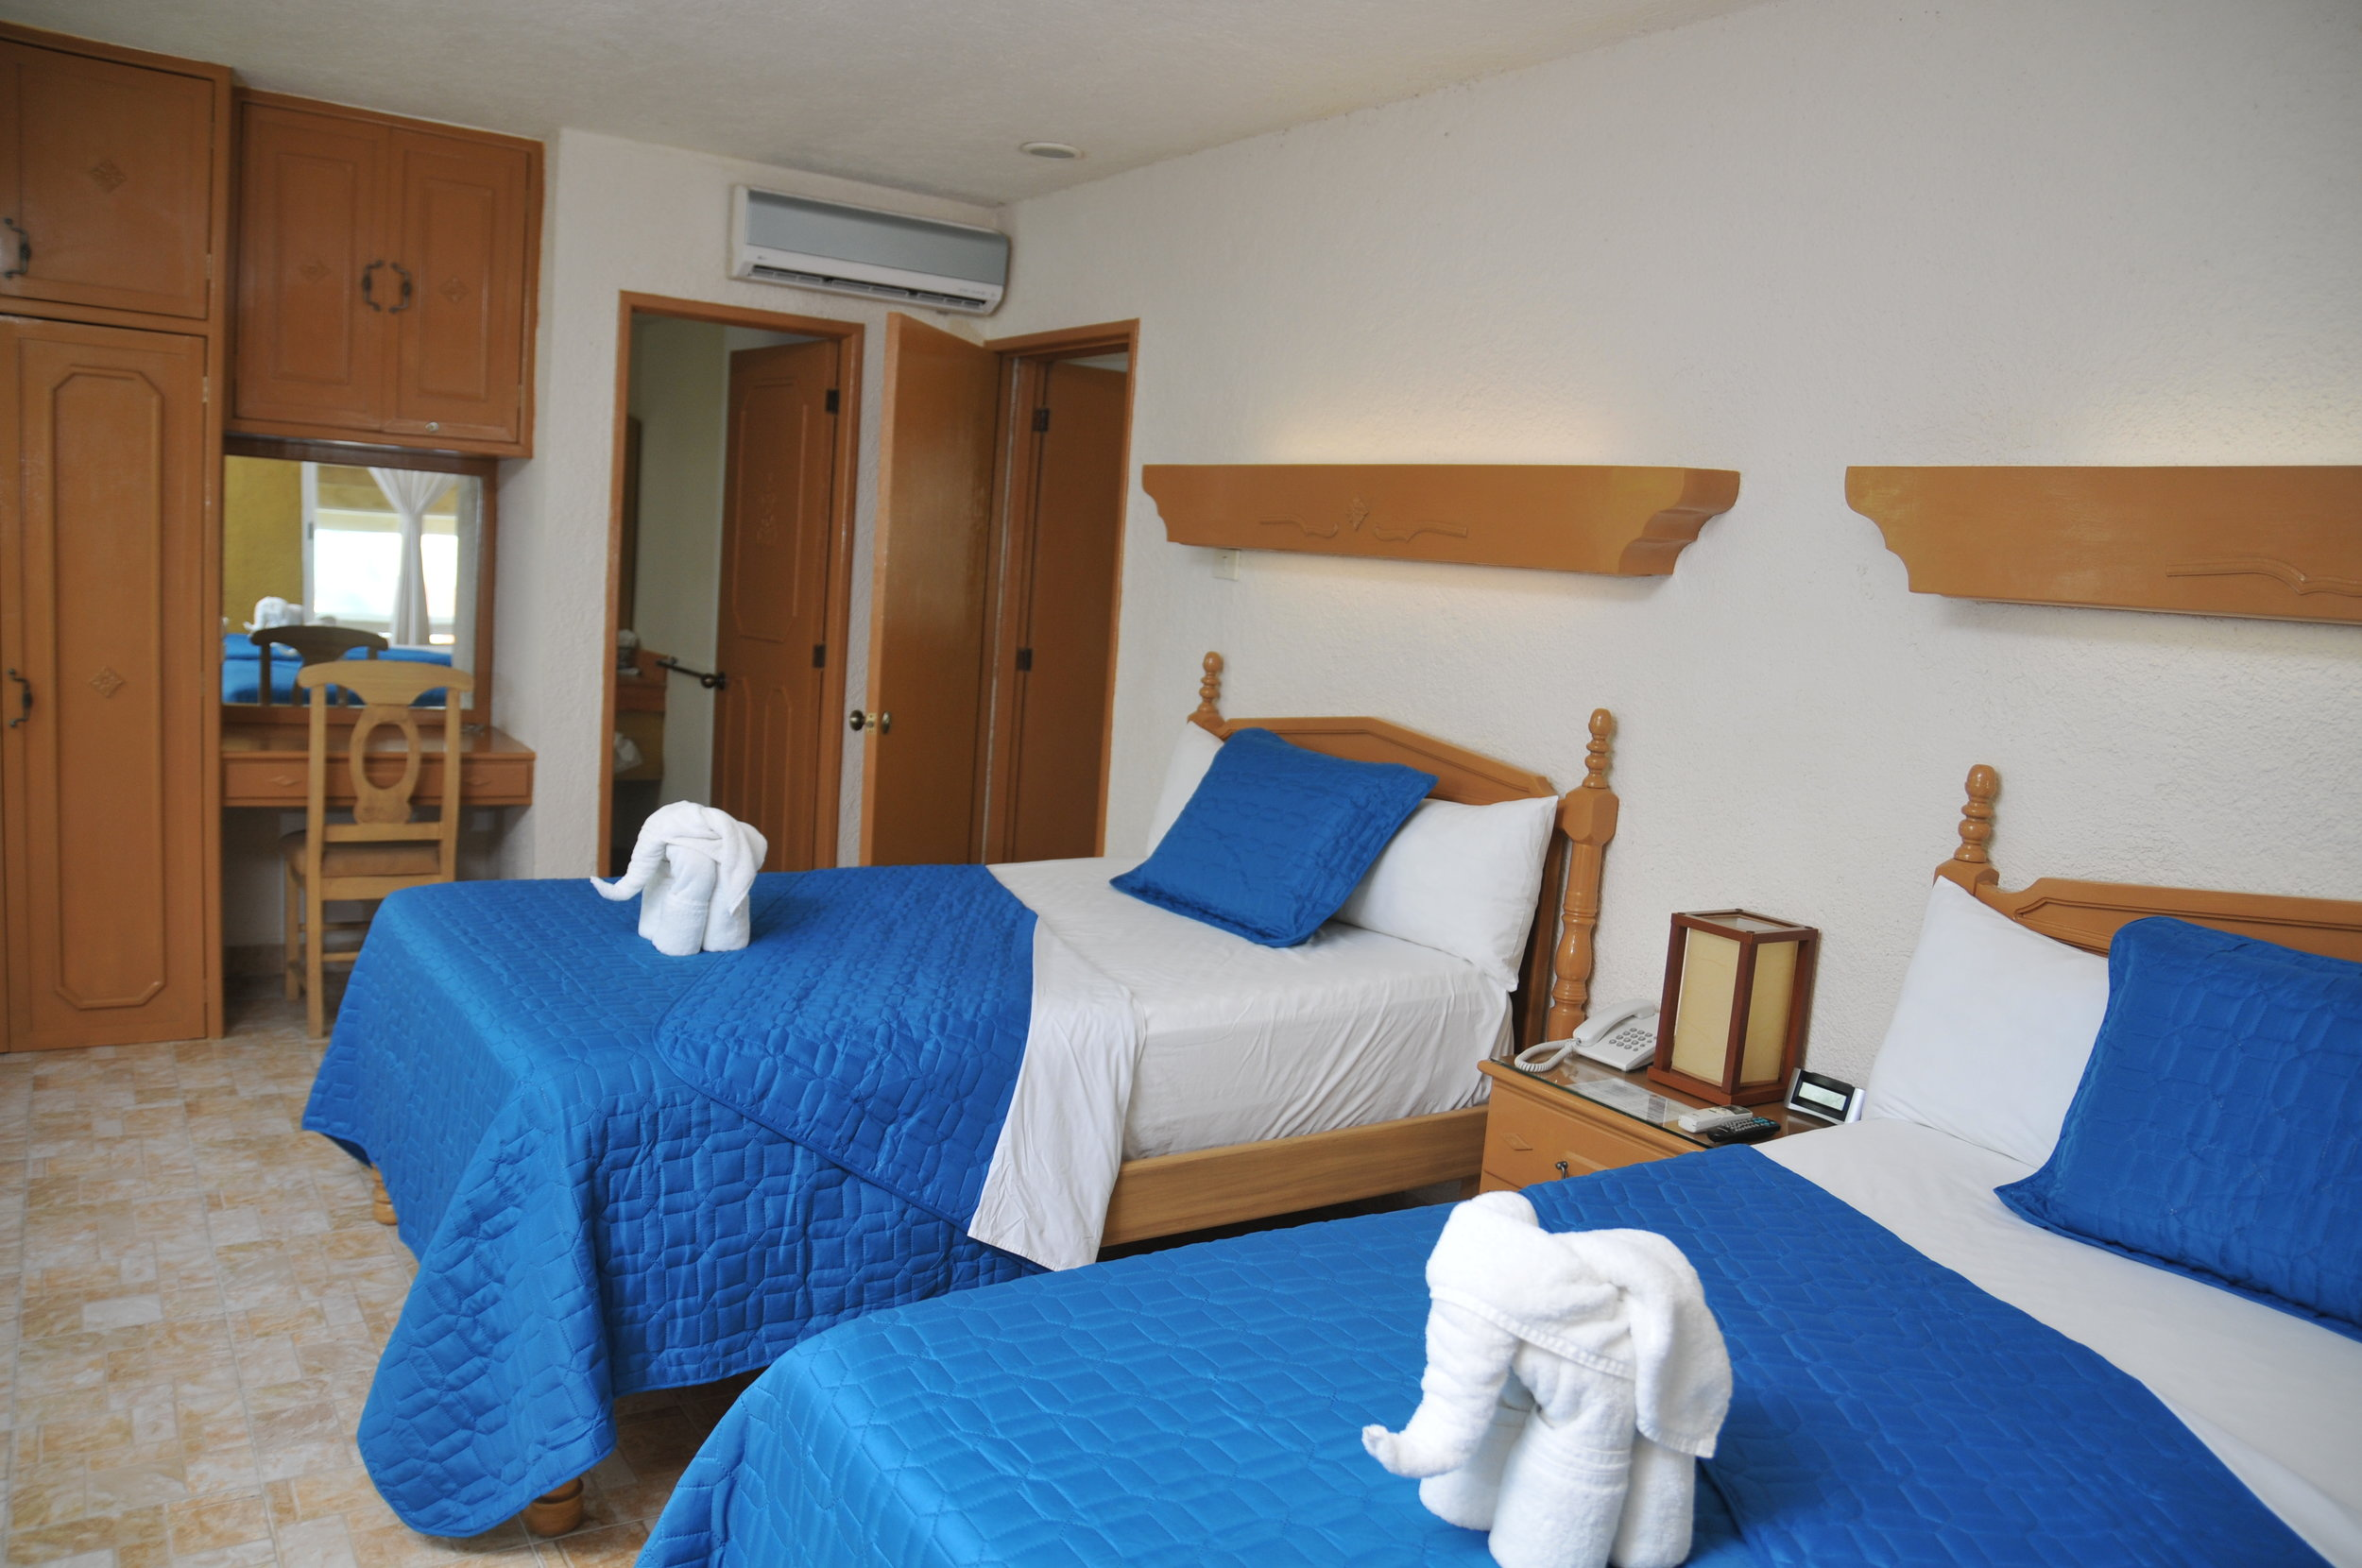 Economy Suite: 2 connecting rooms, 4 double beds